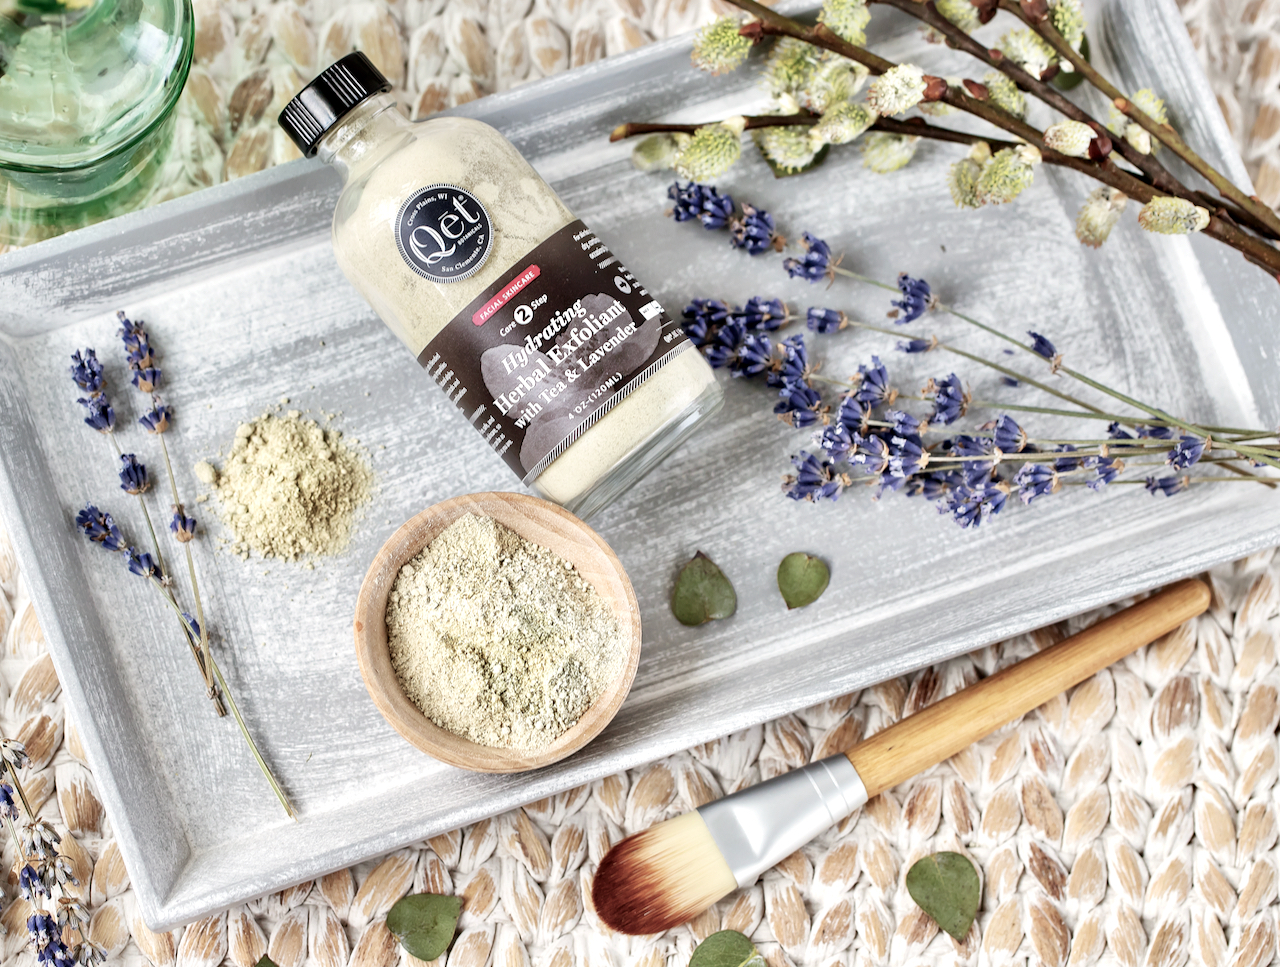 https://qetbotanicals.com/products/hydrating-herbal-exfoliant-with-tea-lavender?_pos=1&_sid=128aa4cdc&_ss=r